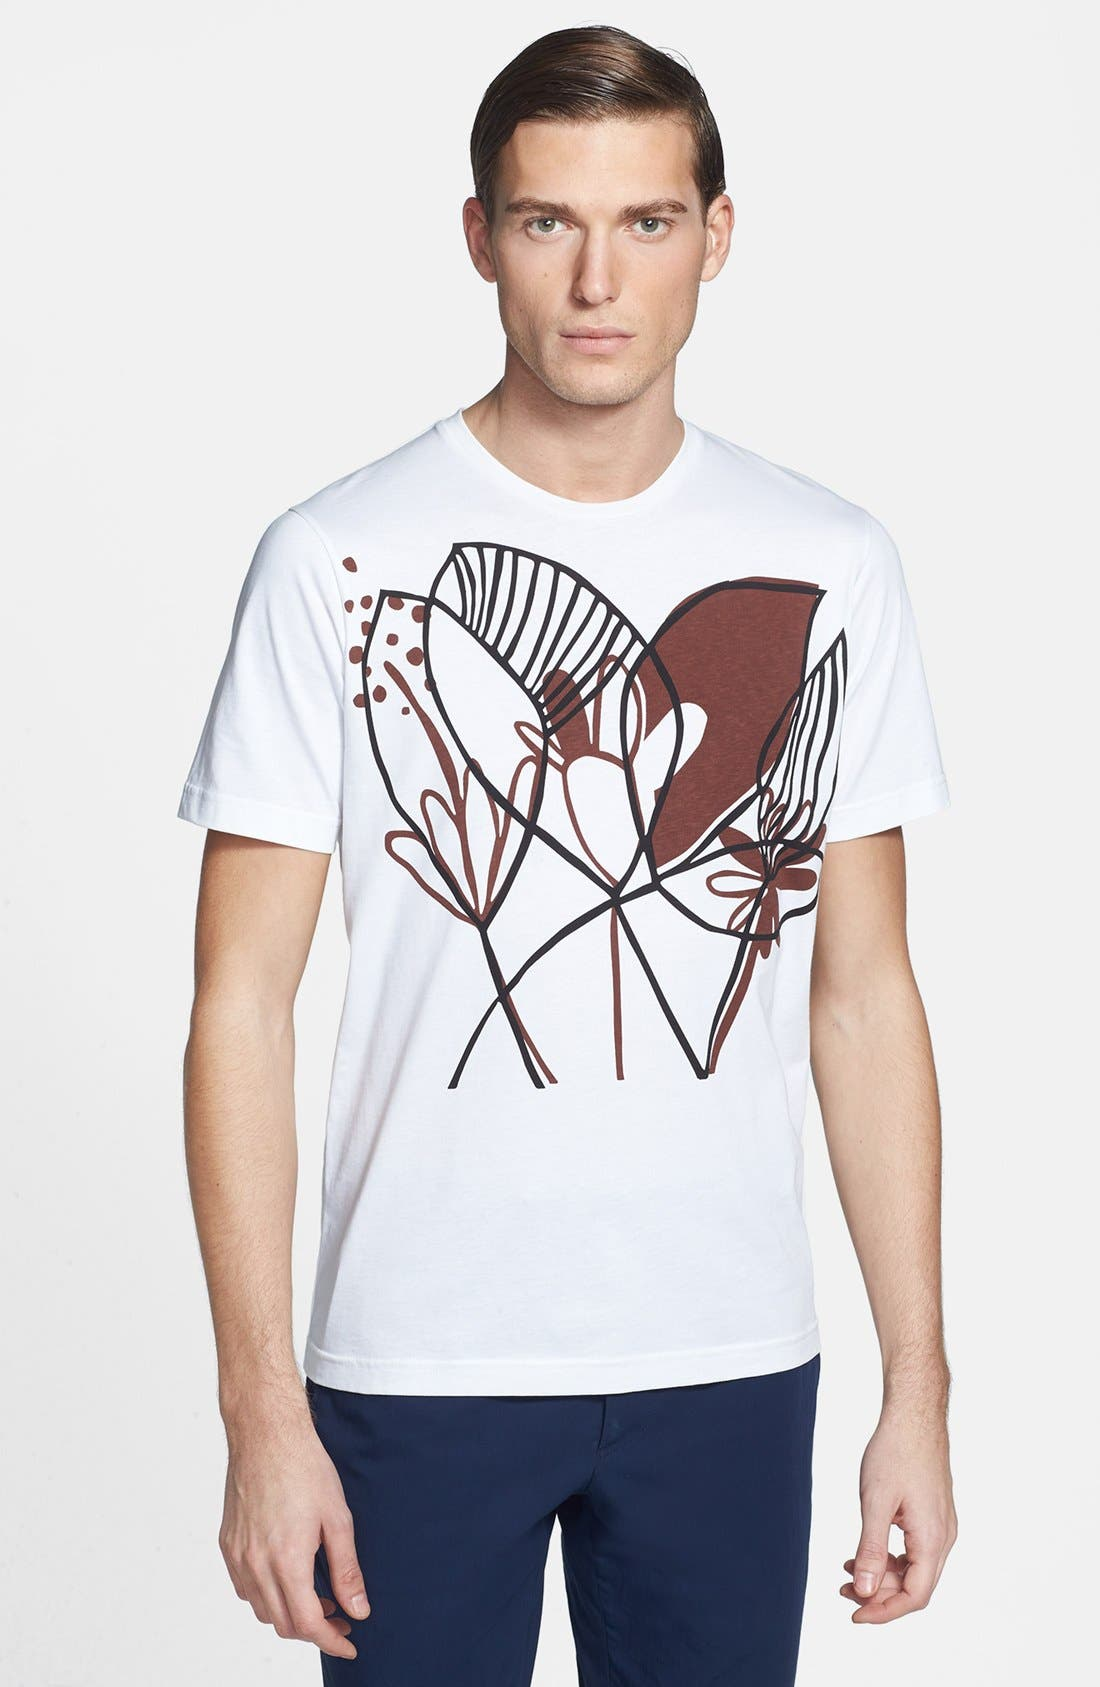 Alternate Image 1 Selected - Marni 'Katja Schwalenberg Leaf' Graphic T-Shirt